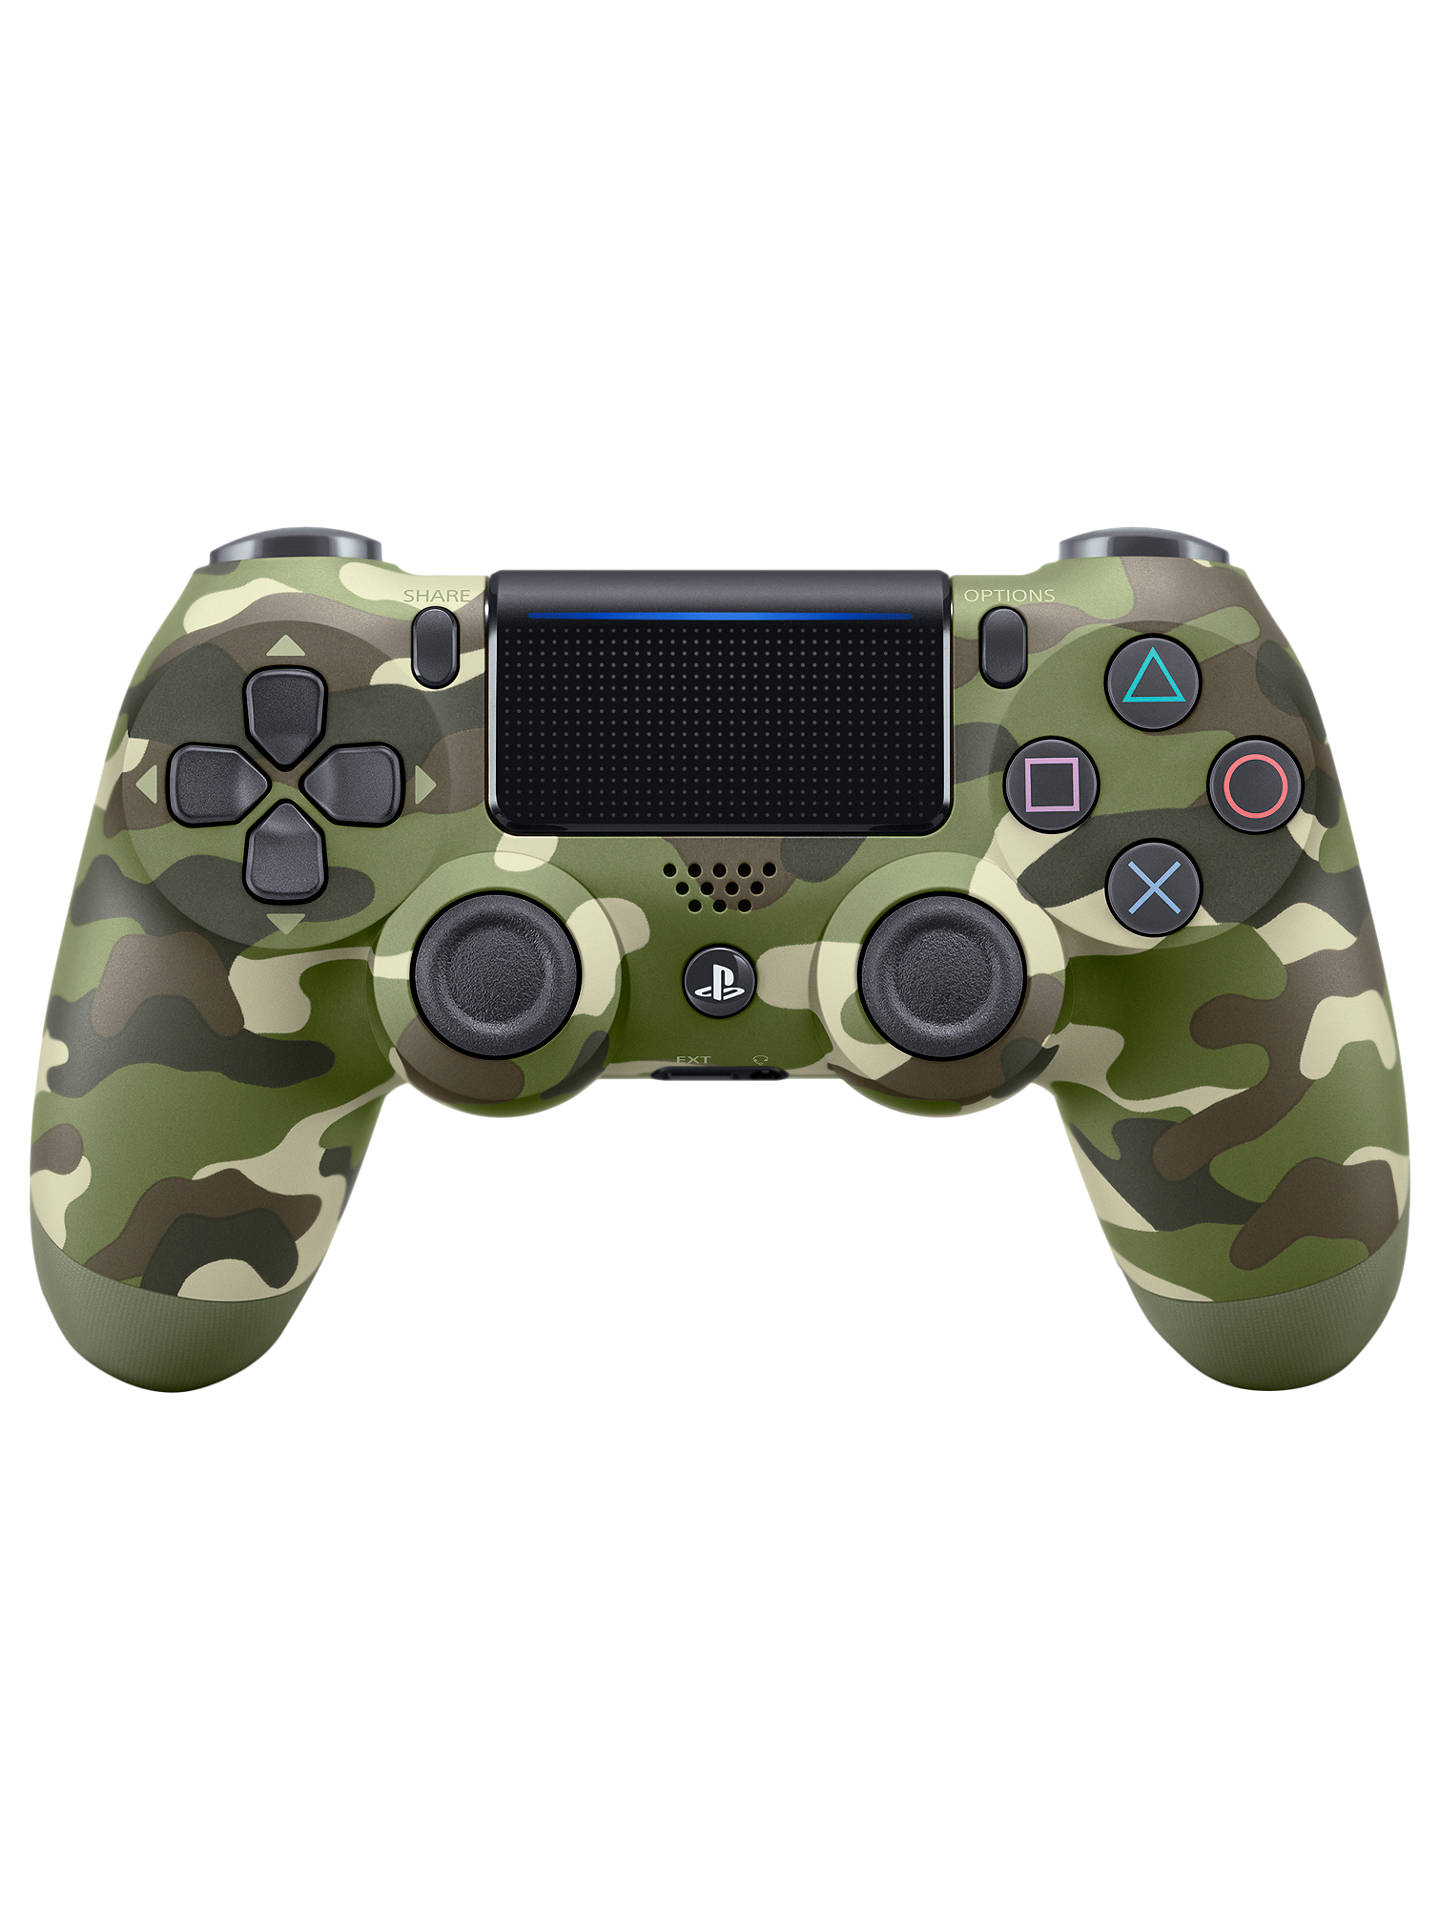 Sony Playstation 4 Dualshock 4 Wireless Controller Green Camo (Refurbished/felújított)